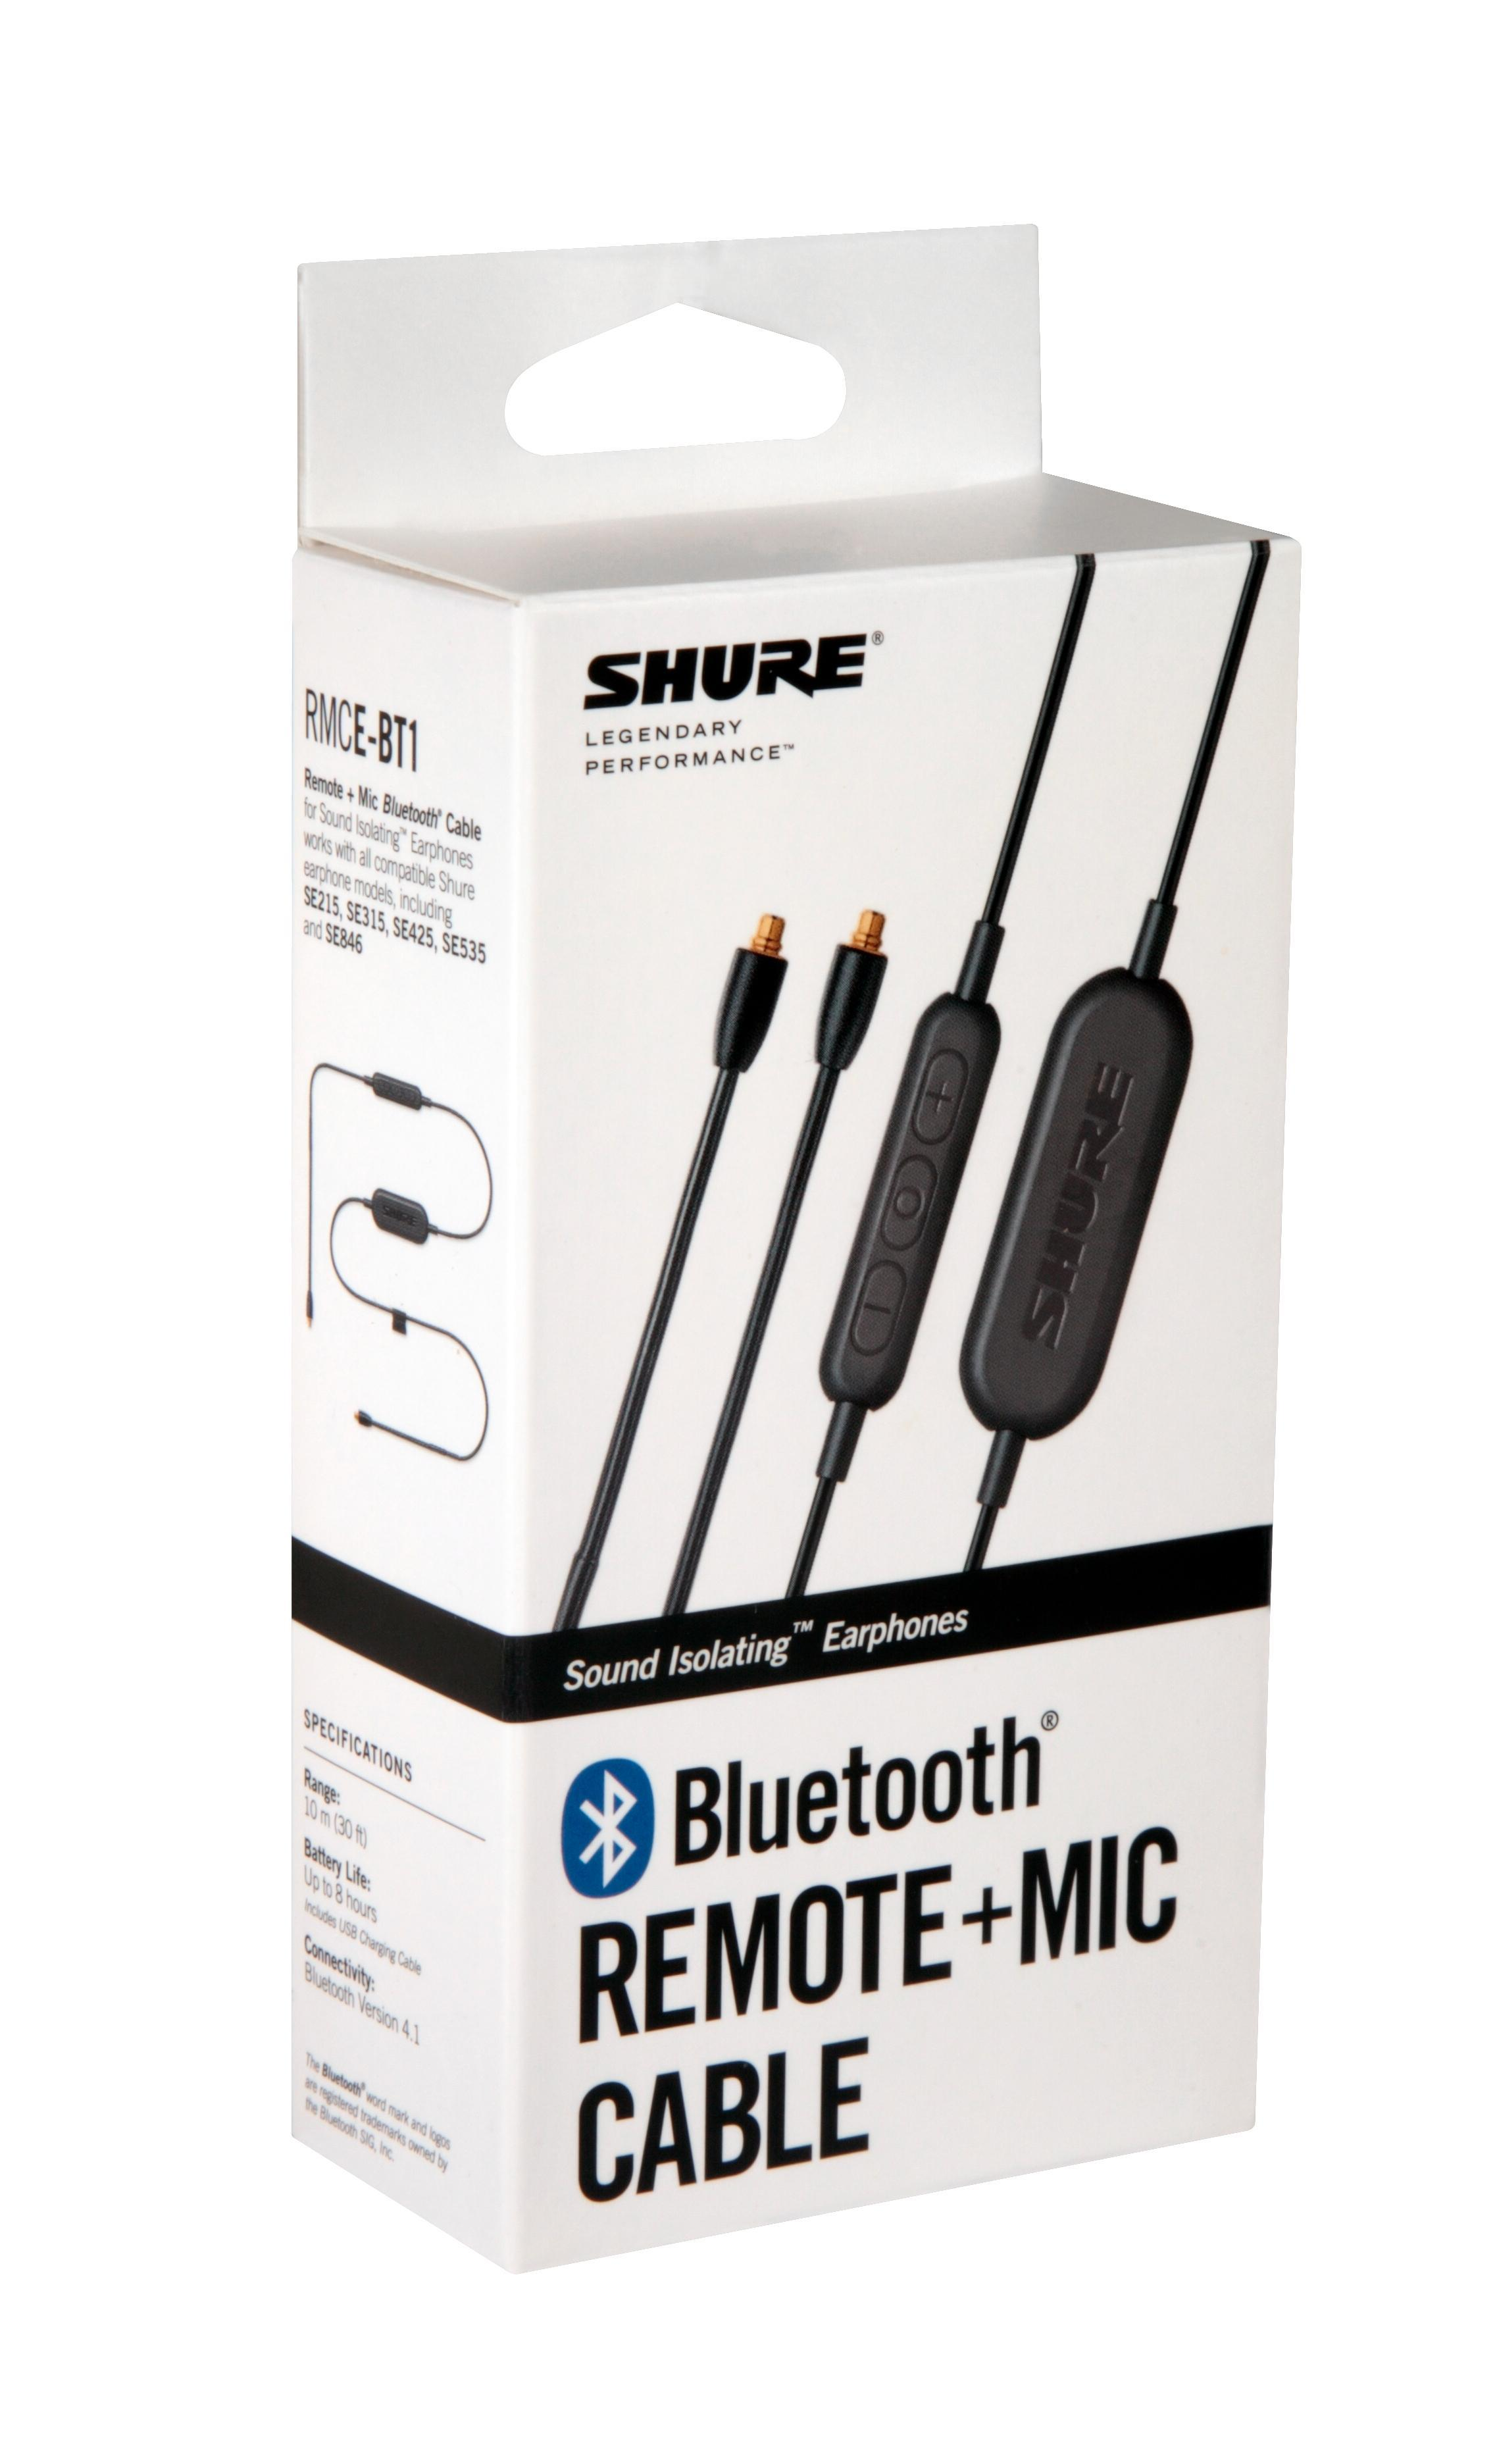 ccfded752d1 Shure RMCE-BT1 Bluetooth Enabled Accessory Cable with Remote + Mic ...